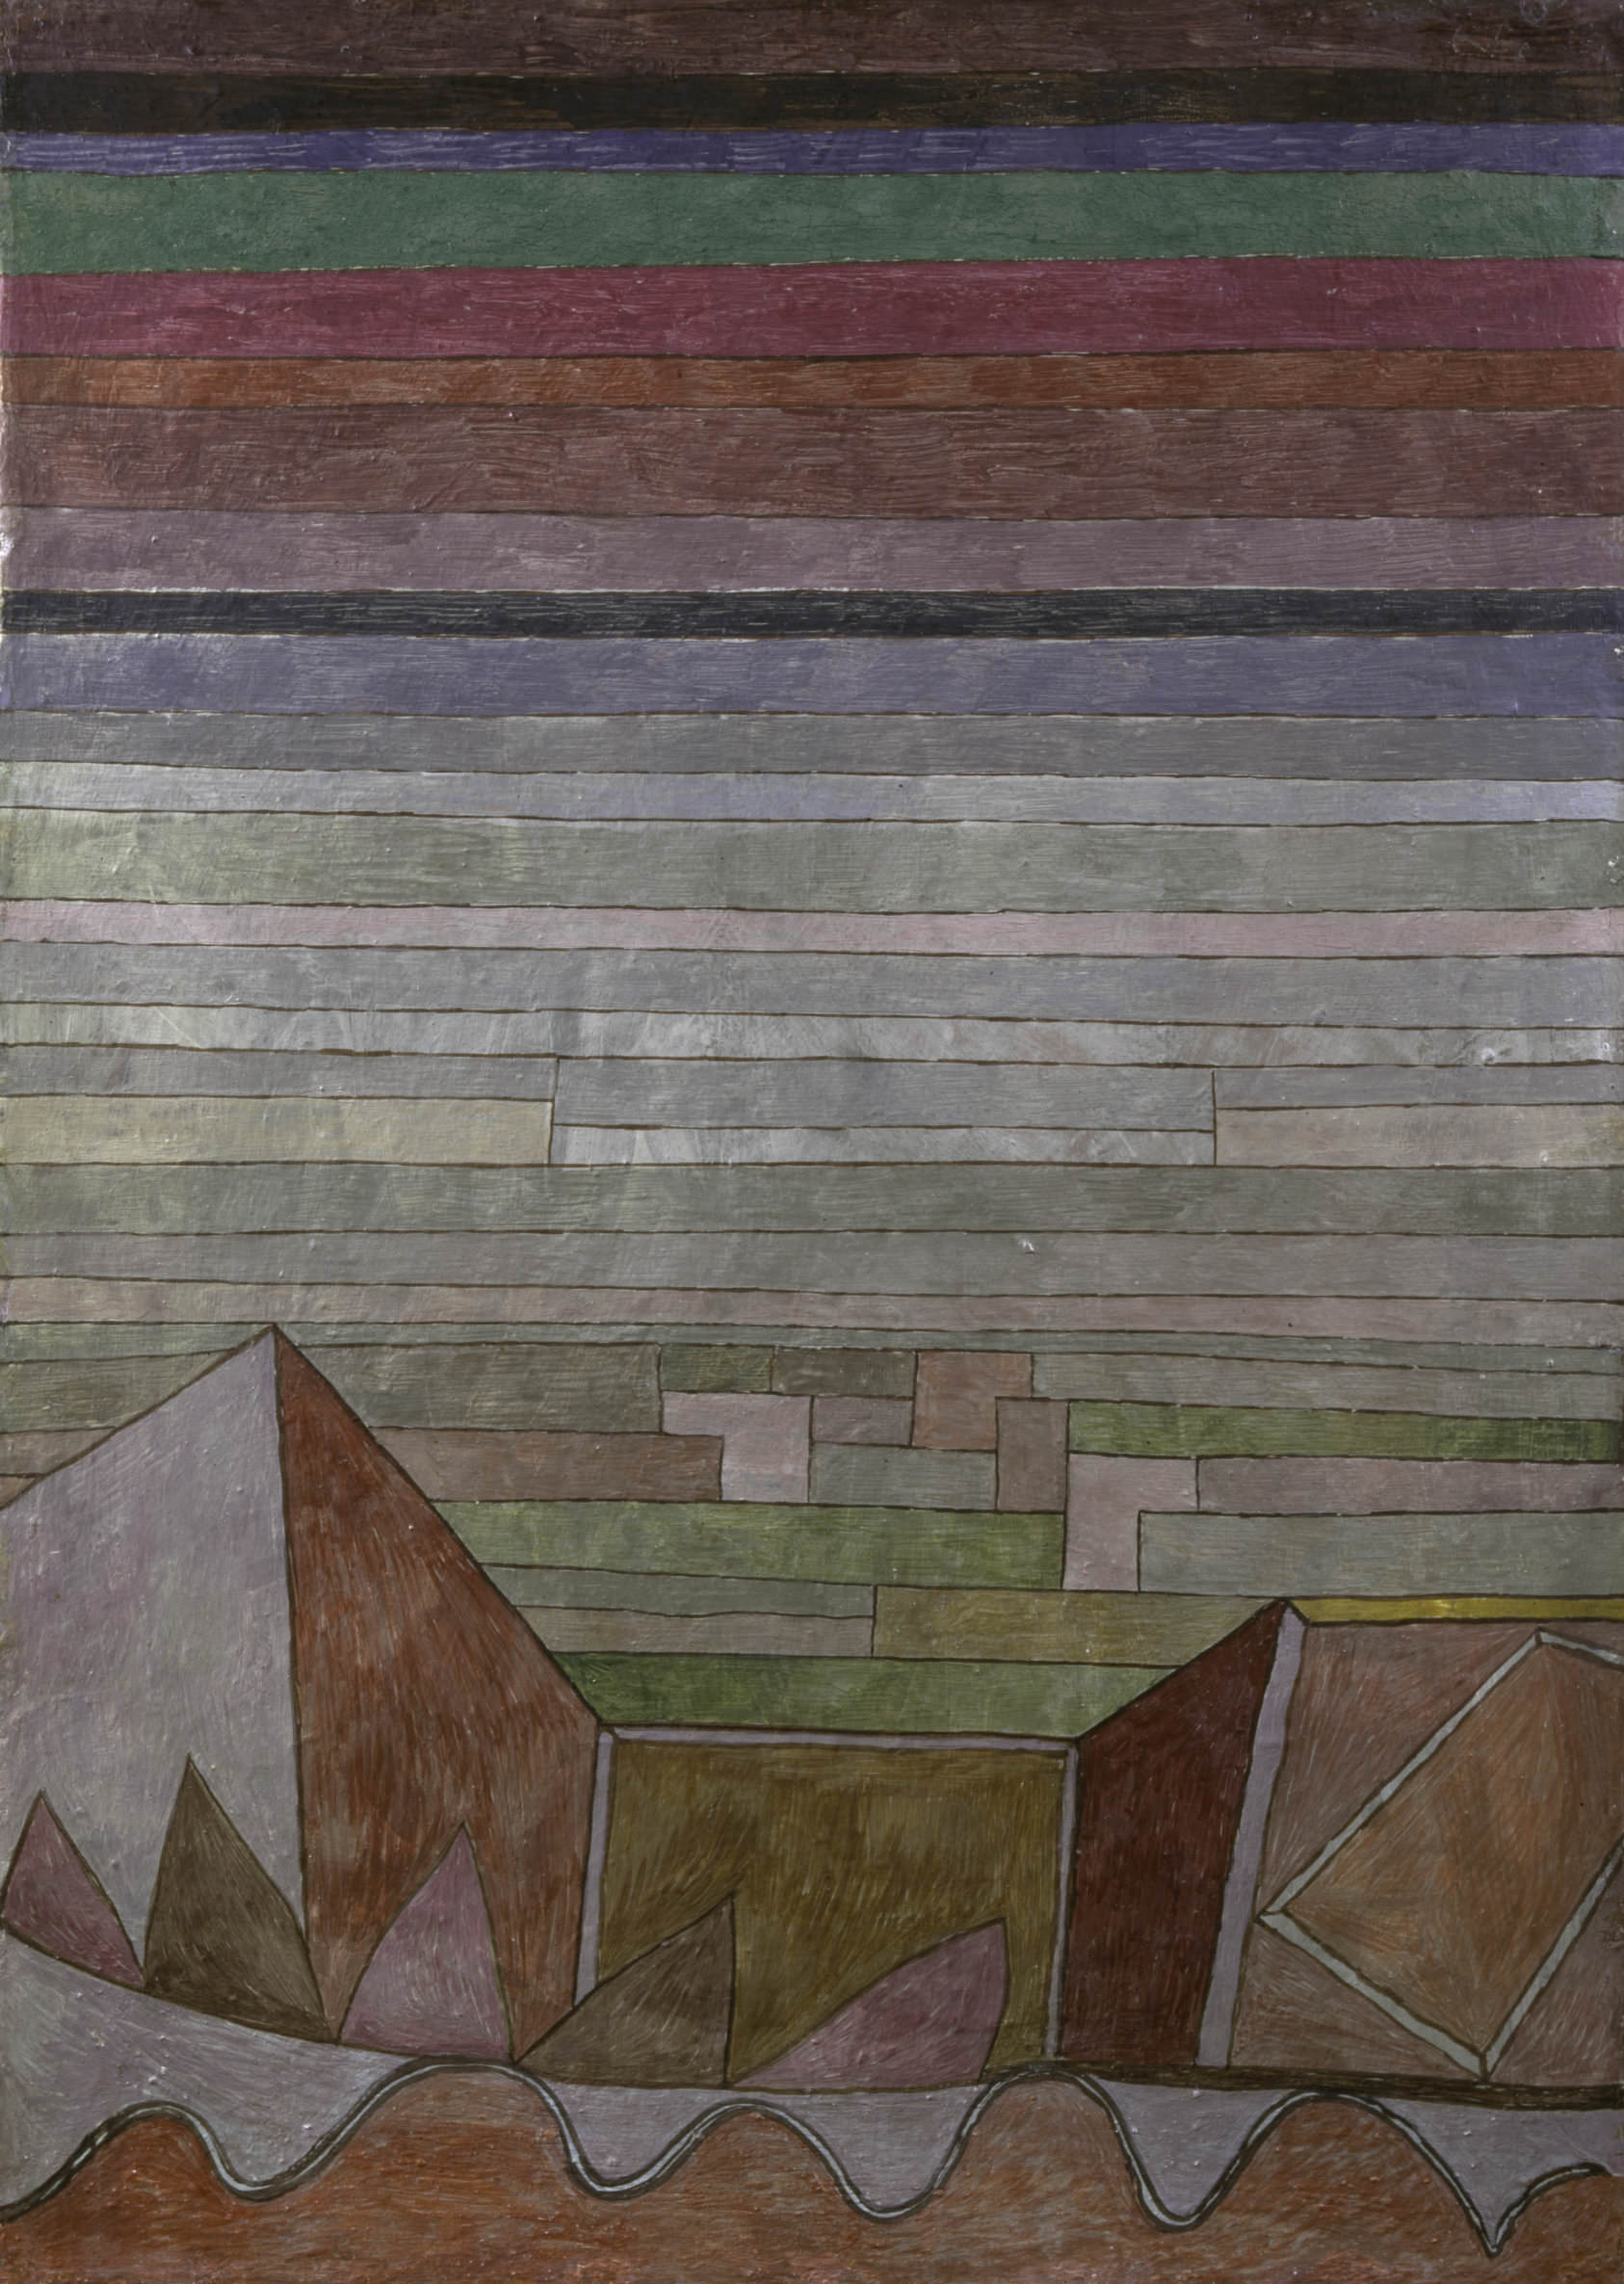 fig. 15 Paul Klee,  Blick in das Fruchtland  [View into the Fertile Country] , 1932, 189, oil on cardboard, 48,7 x 34,7 cm, © Städel Museum, Frankfurt am Main